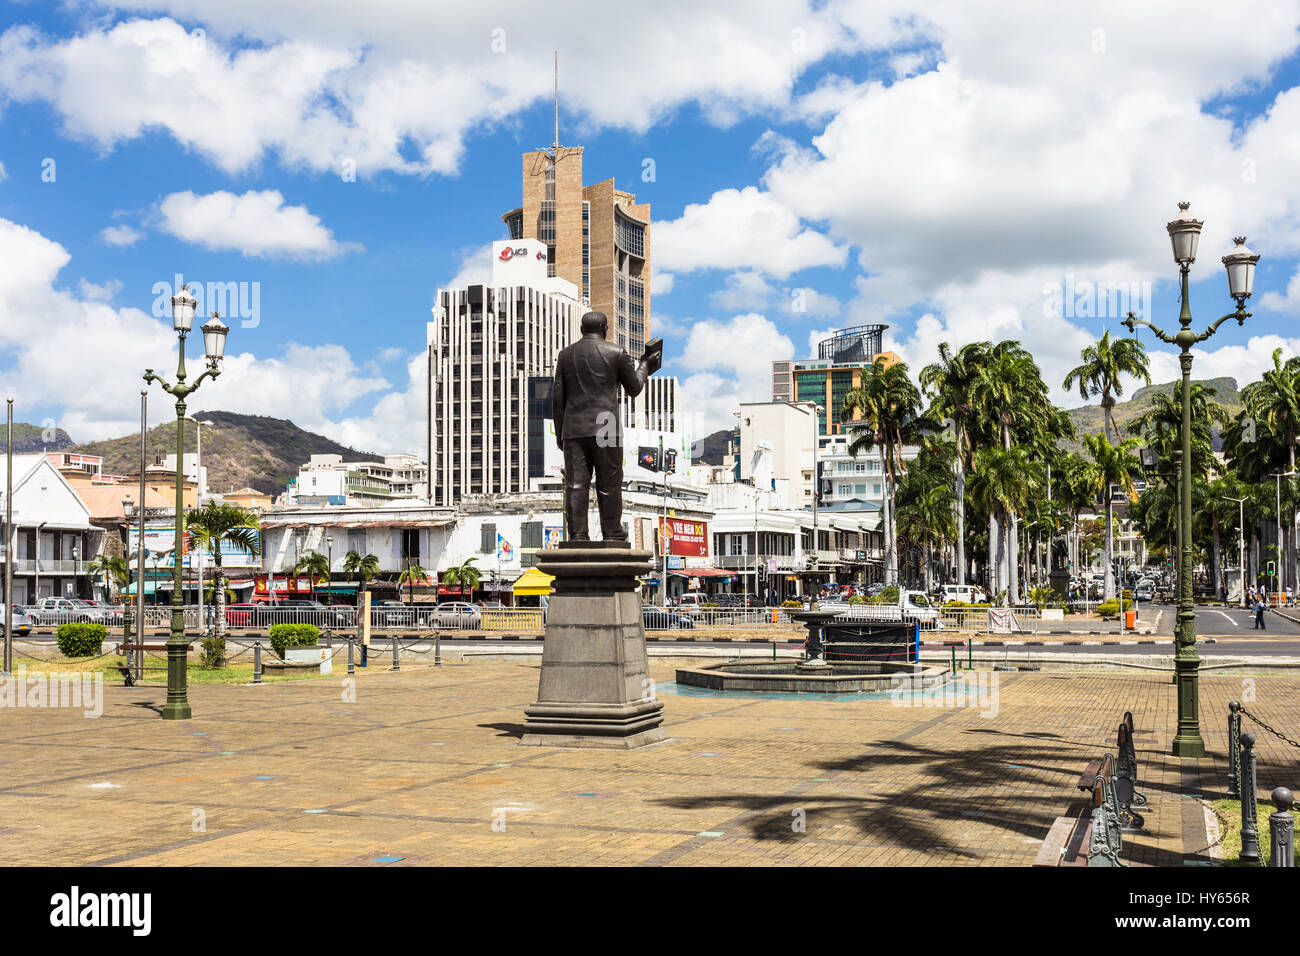 PORT LOUIS, MAURITIUS - NOVEMBER 18, 2016: A statue overlooks the waterfront promenade in front of the he modern Stock Photo